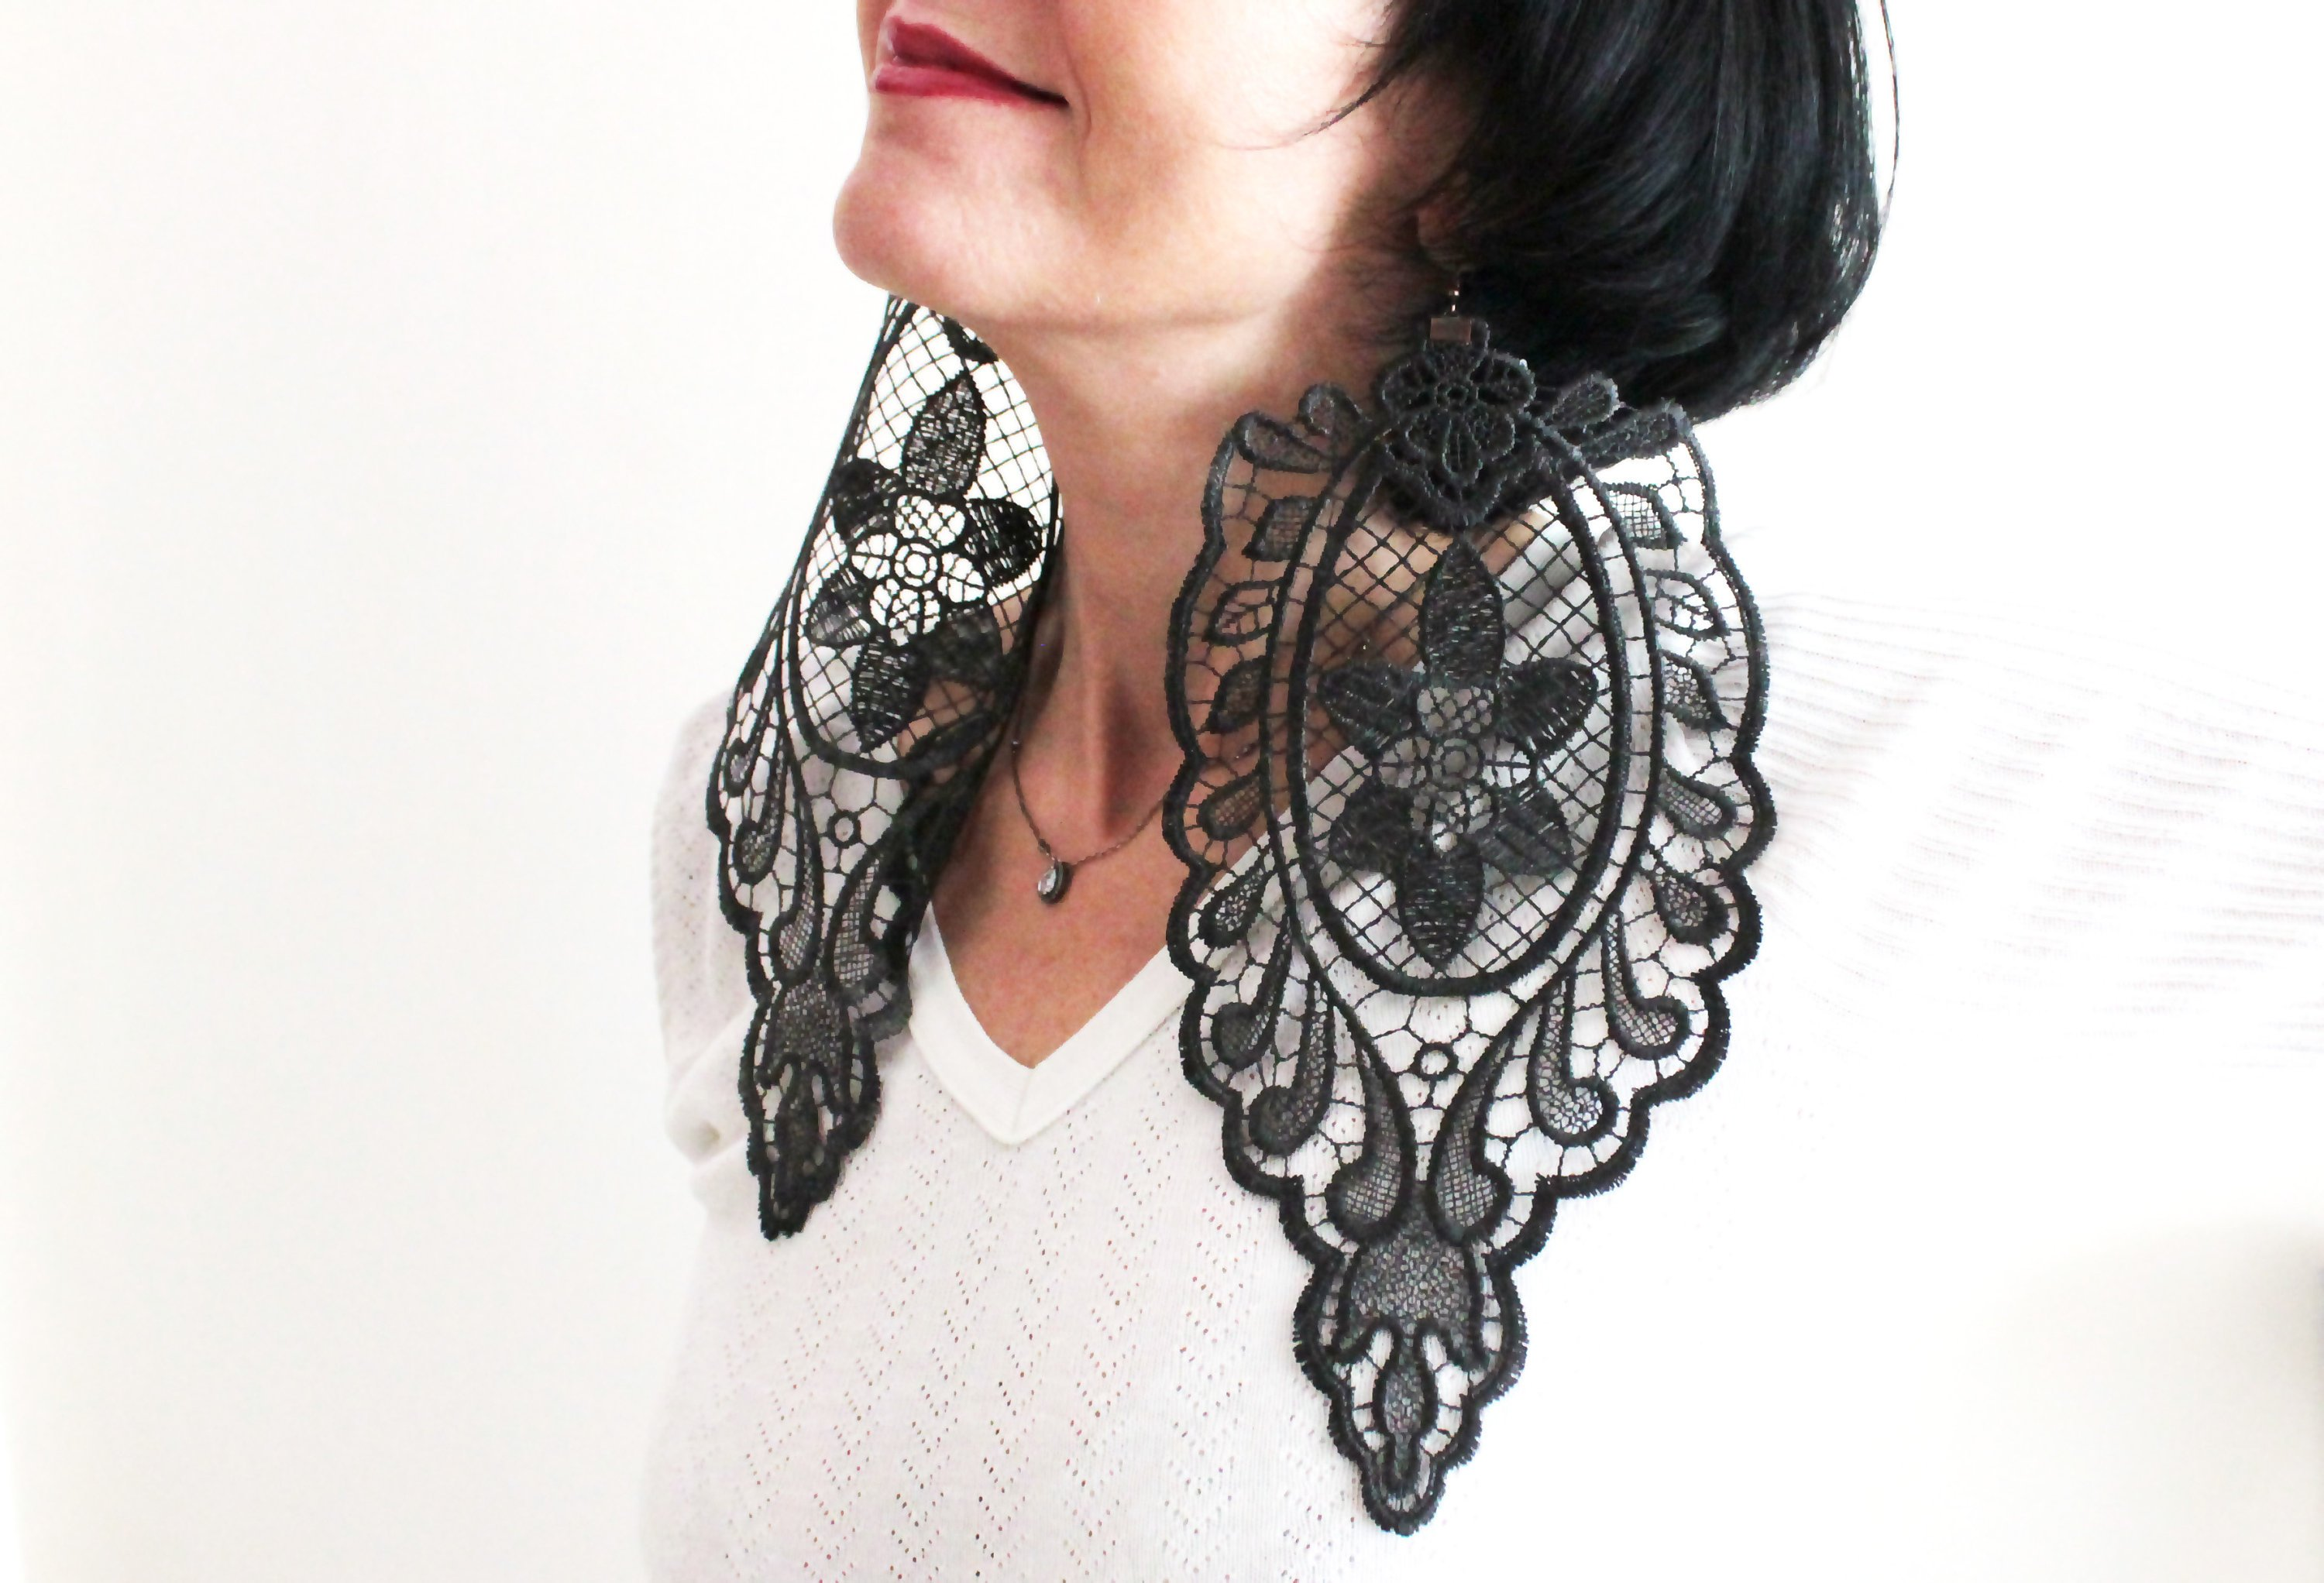 Oversized Lace Earrings Unique Gifts Handmade Black Lace Earrings Boho Gothic Steampunk Earring Statement Earrings Mom Gift For Her